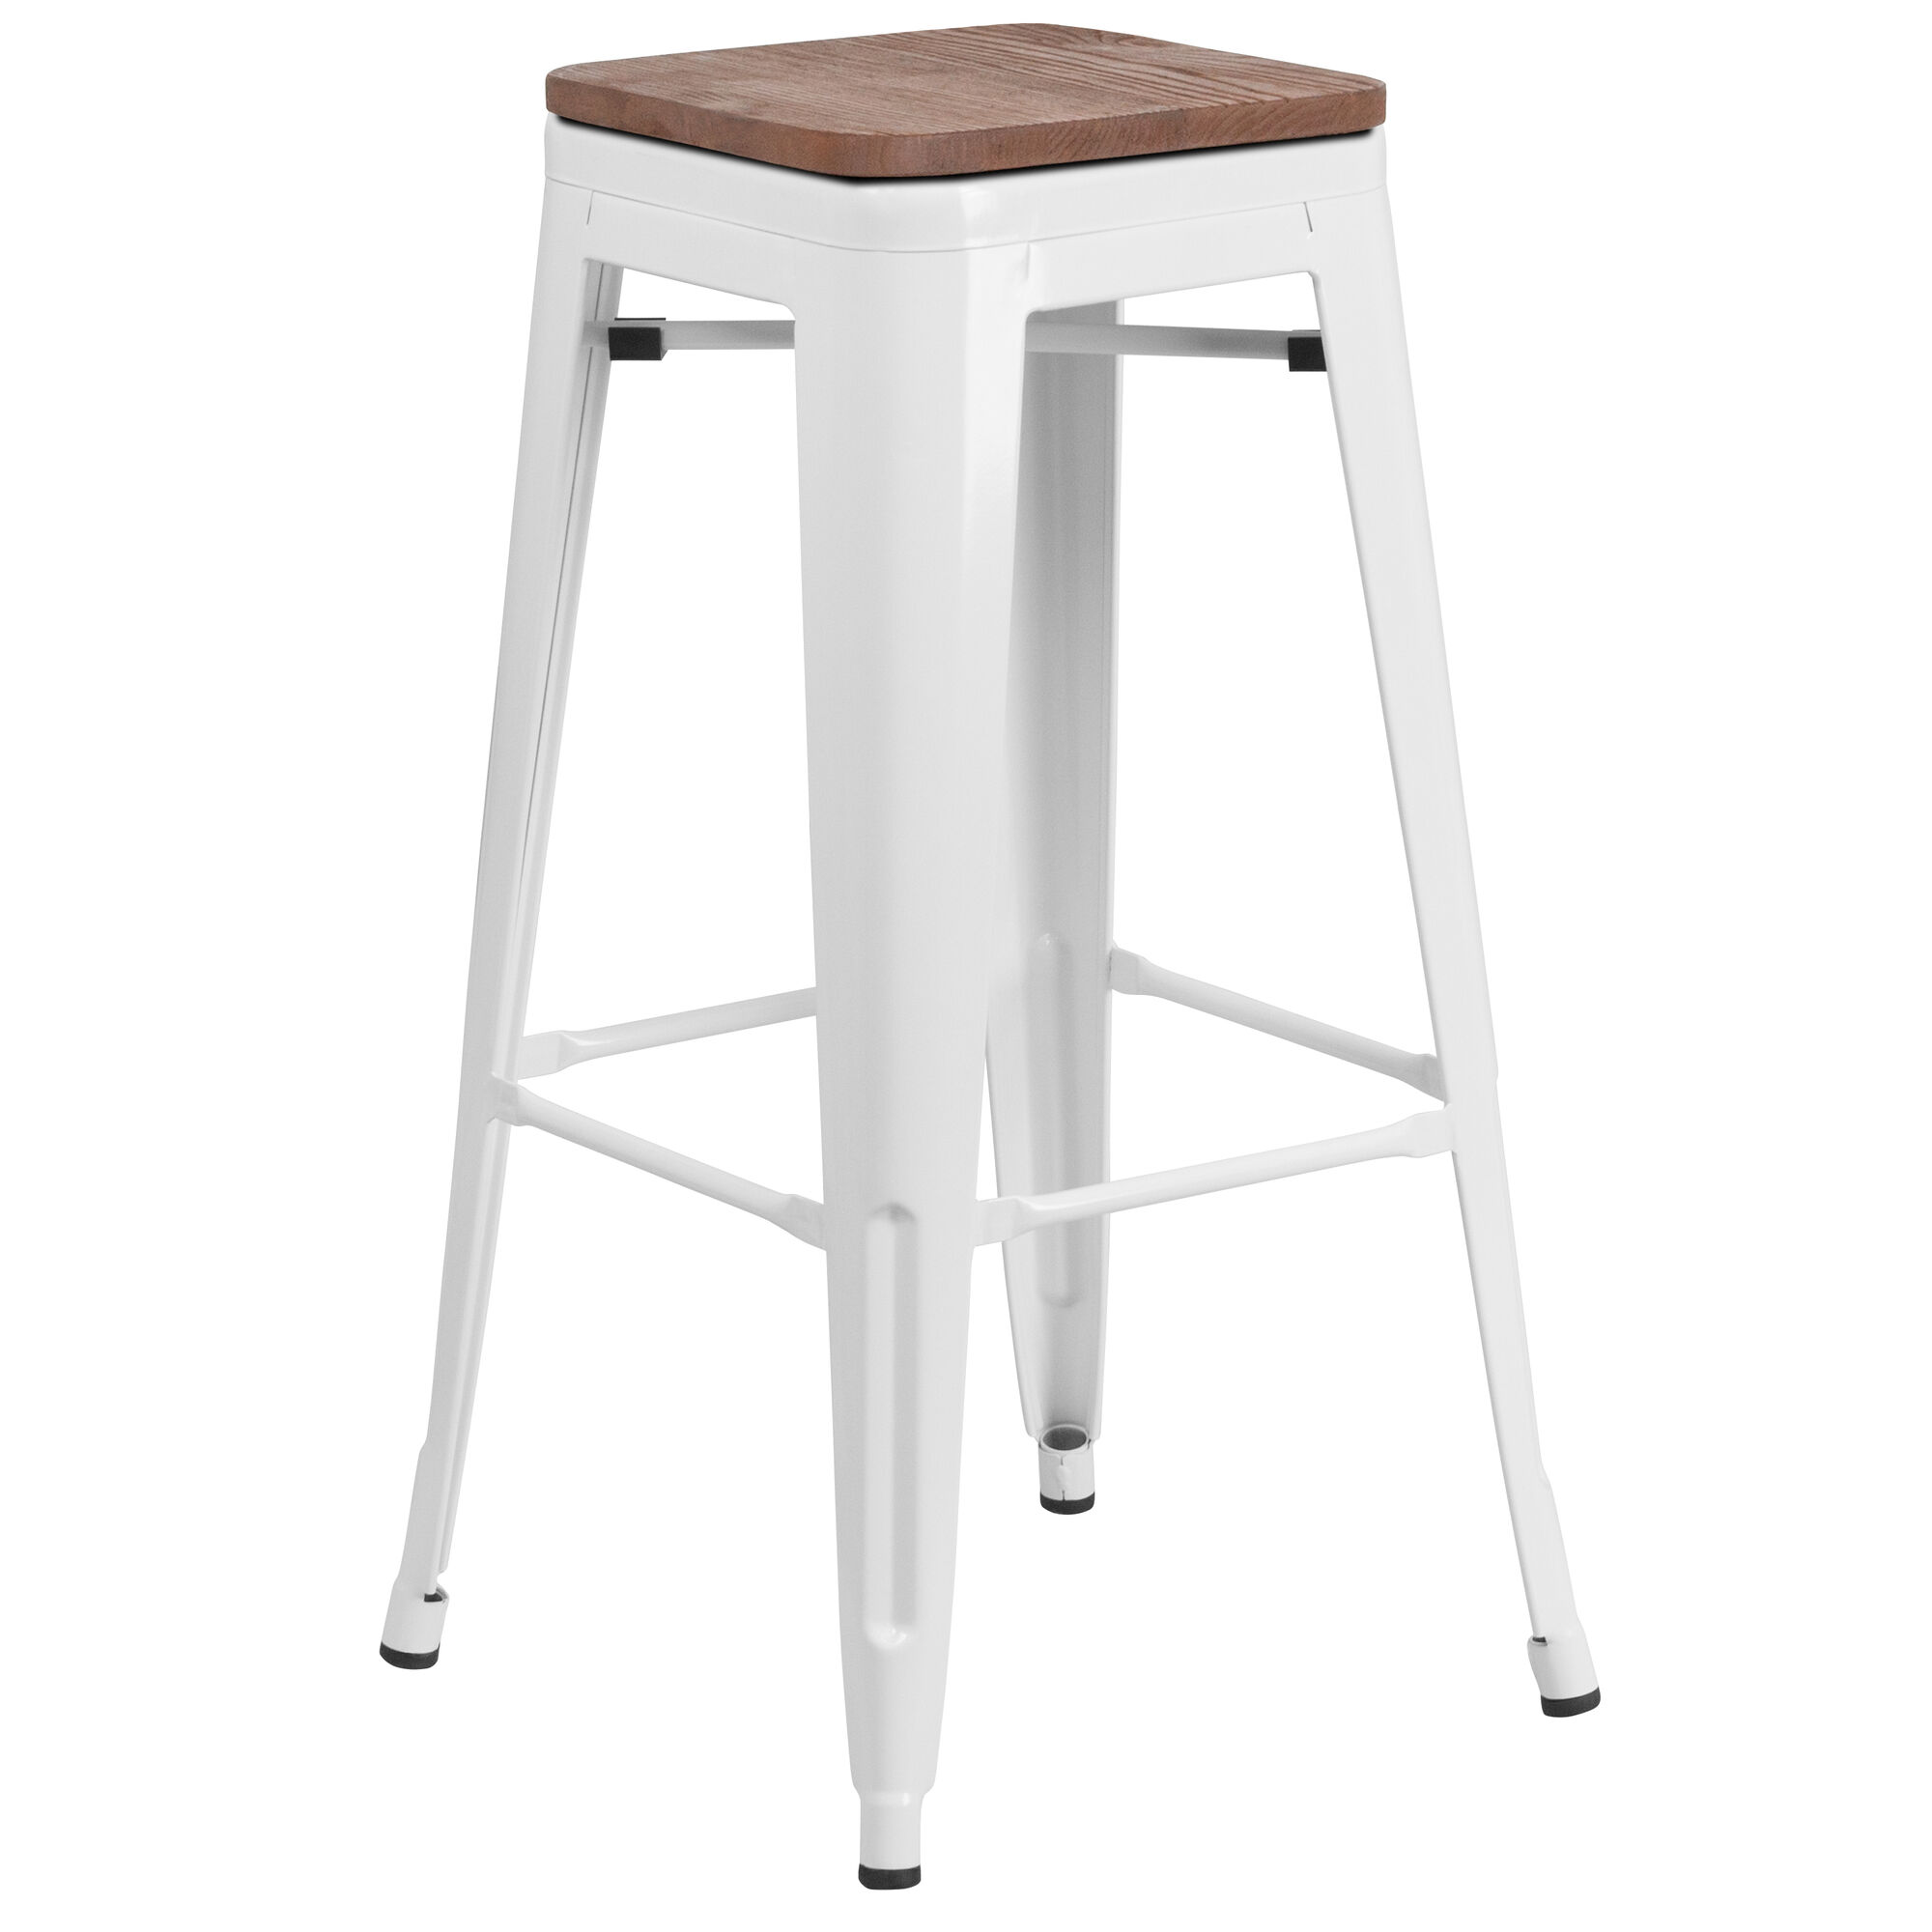 Astonishing 30 High Backless White Metal Barstool With Square Wood Seat Onthecornerstone Fun Painted Chair Ideas Images Onthecornerstoneorg